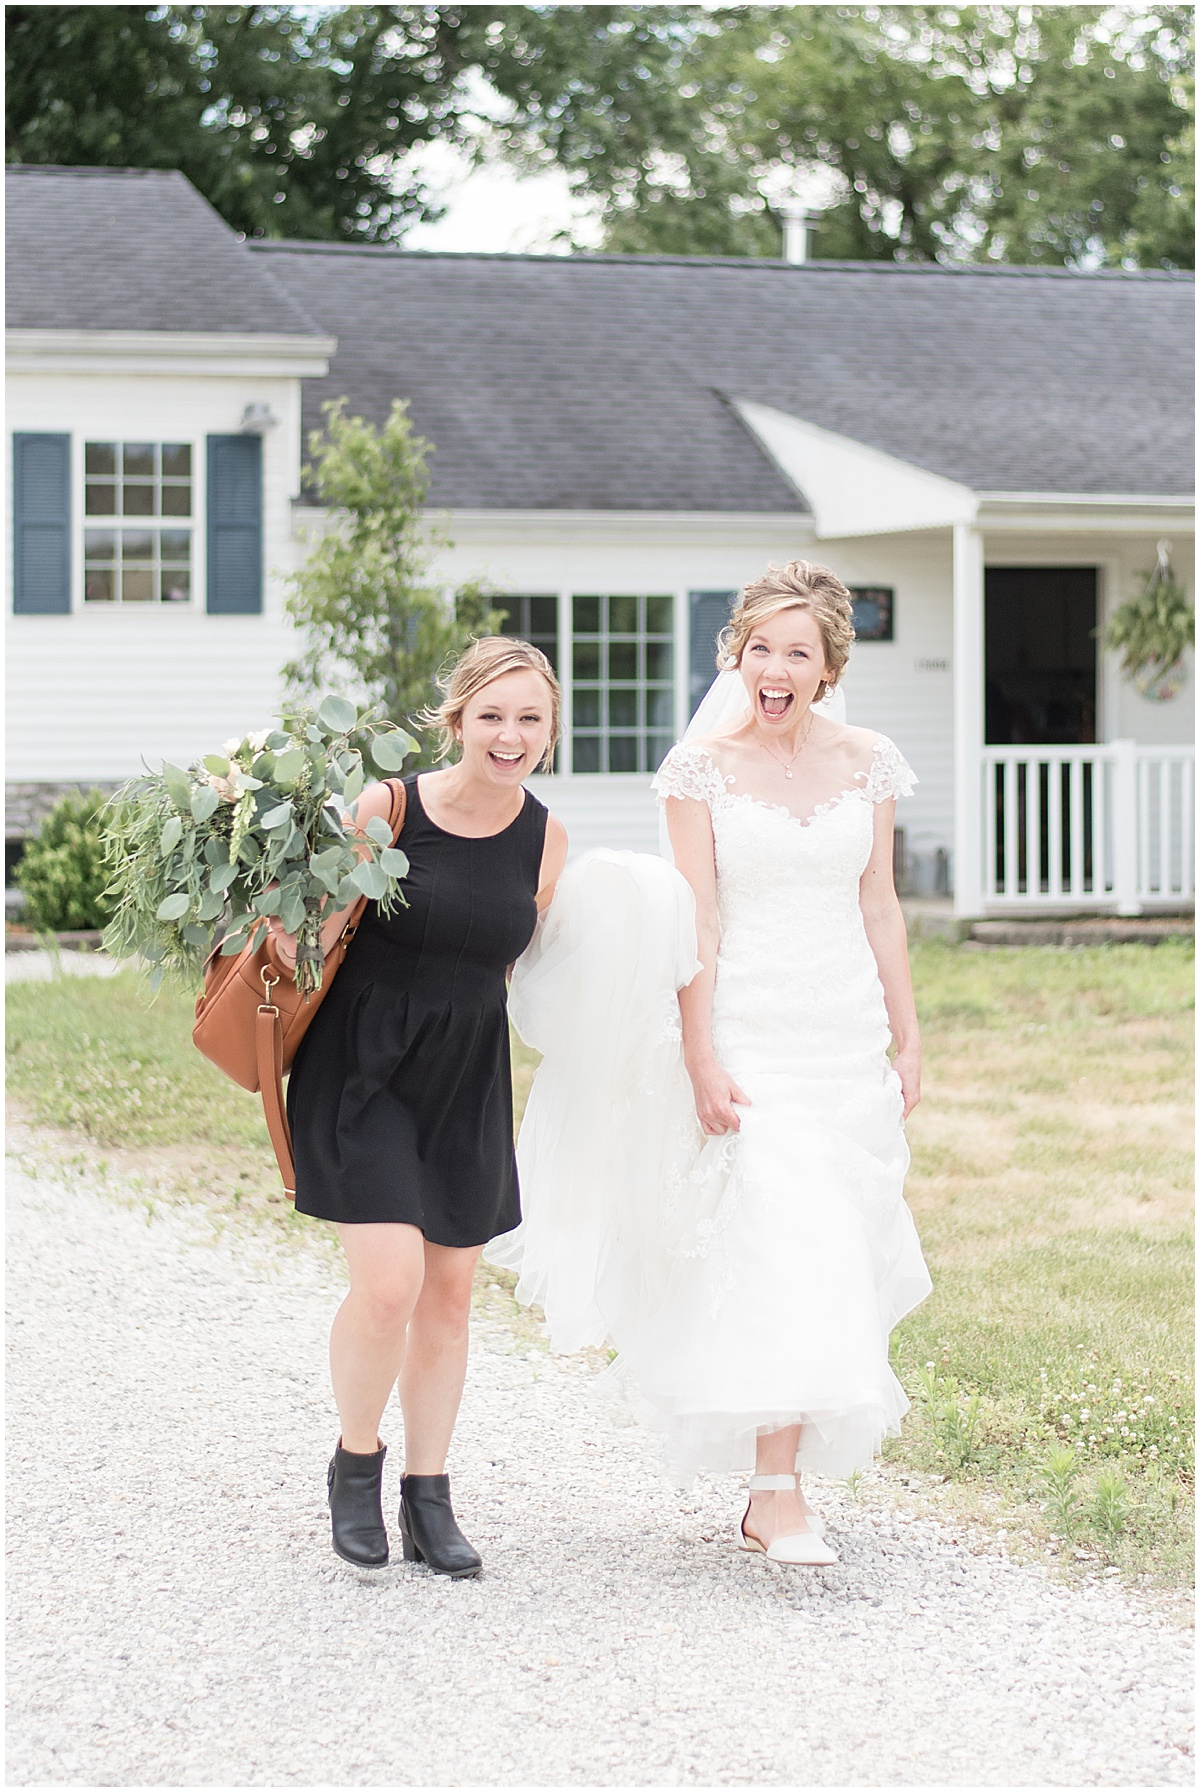 Lafayette, Indiana wedding photographer Victoria Rayburn carrying a bride's dress